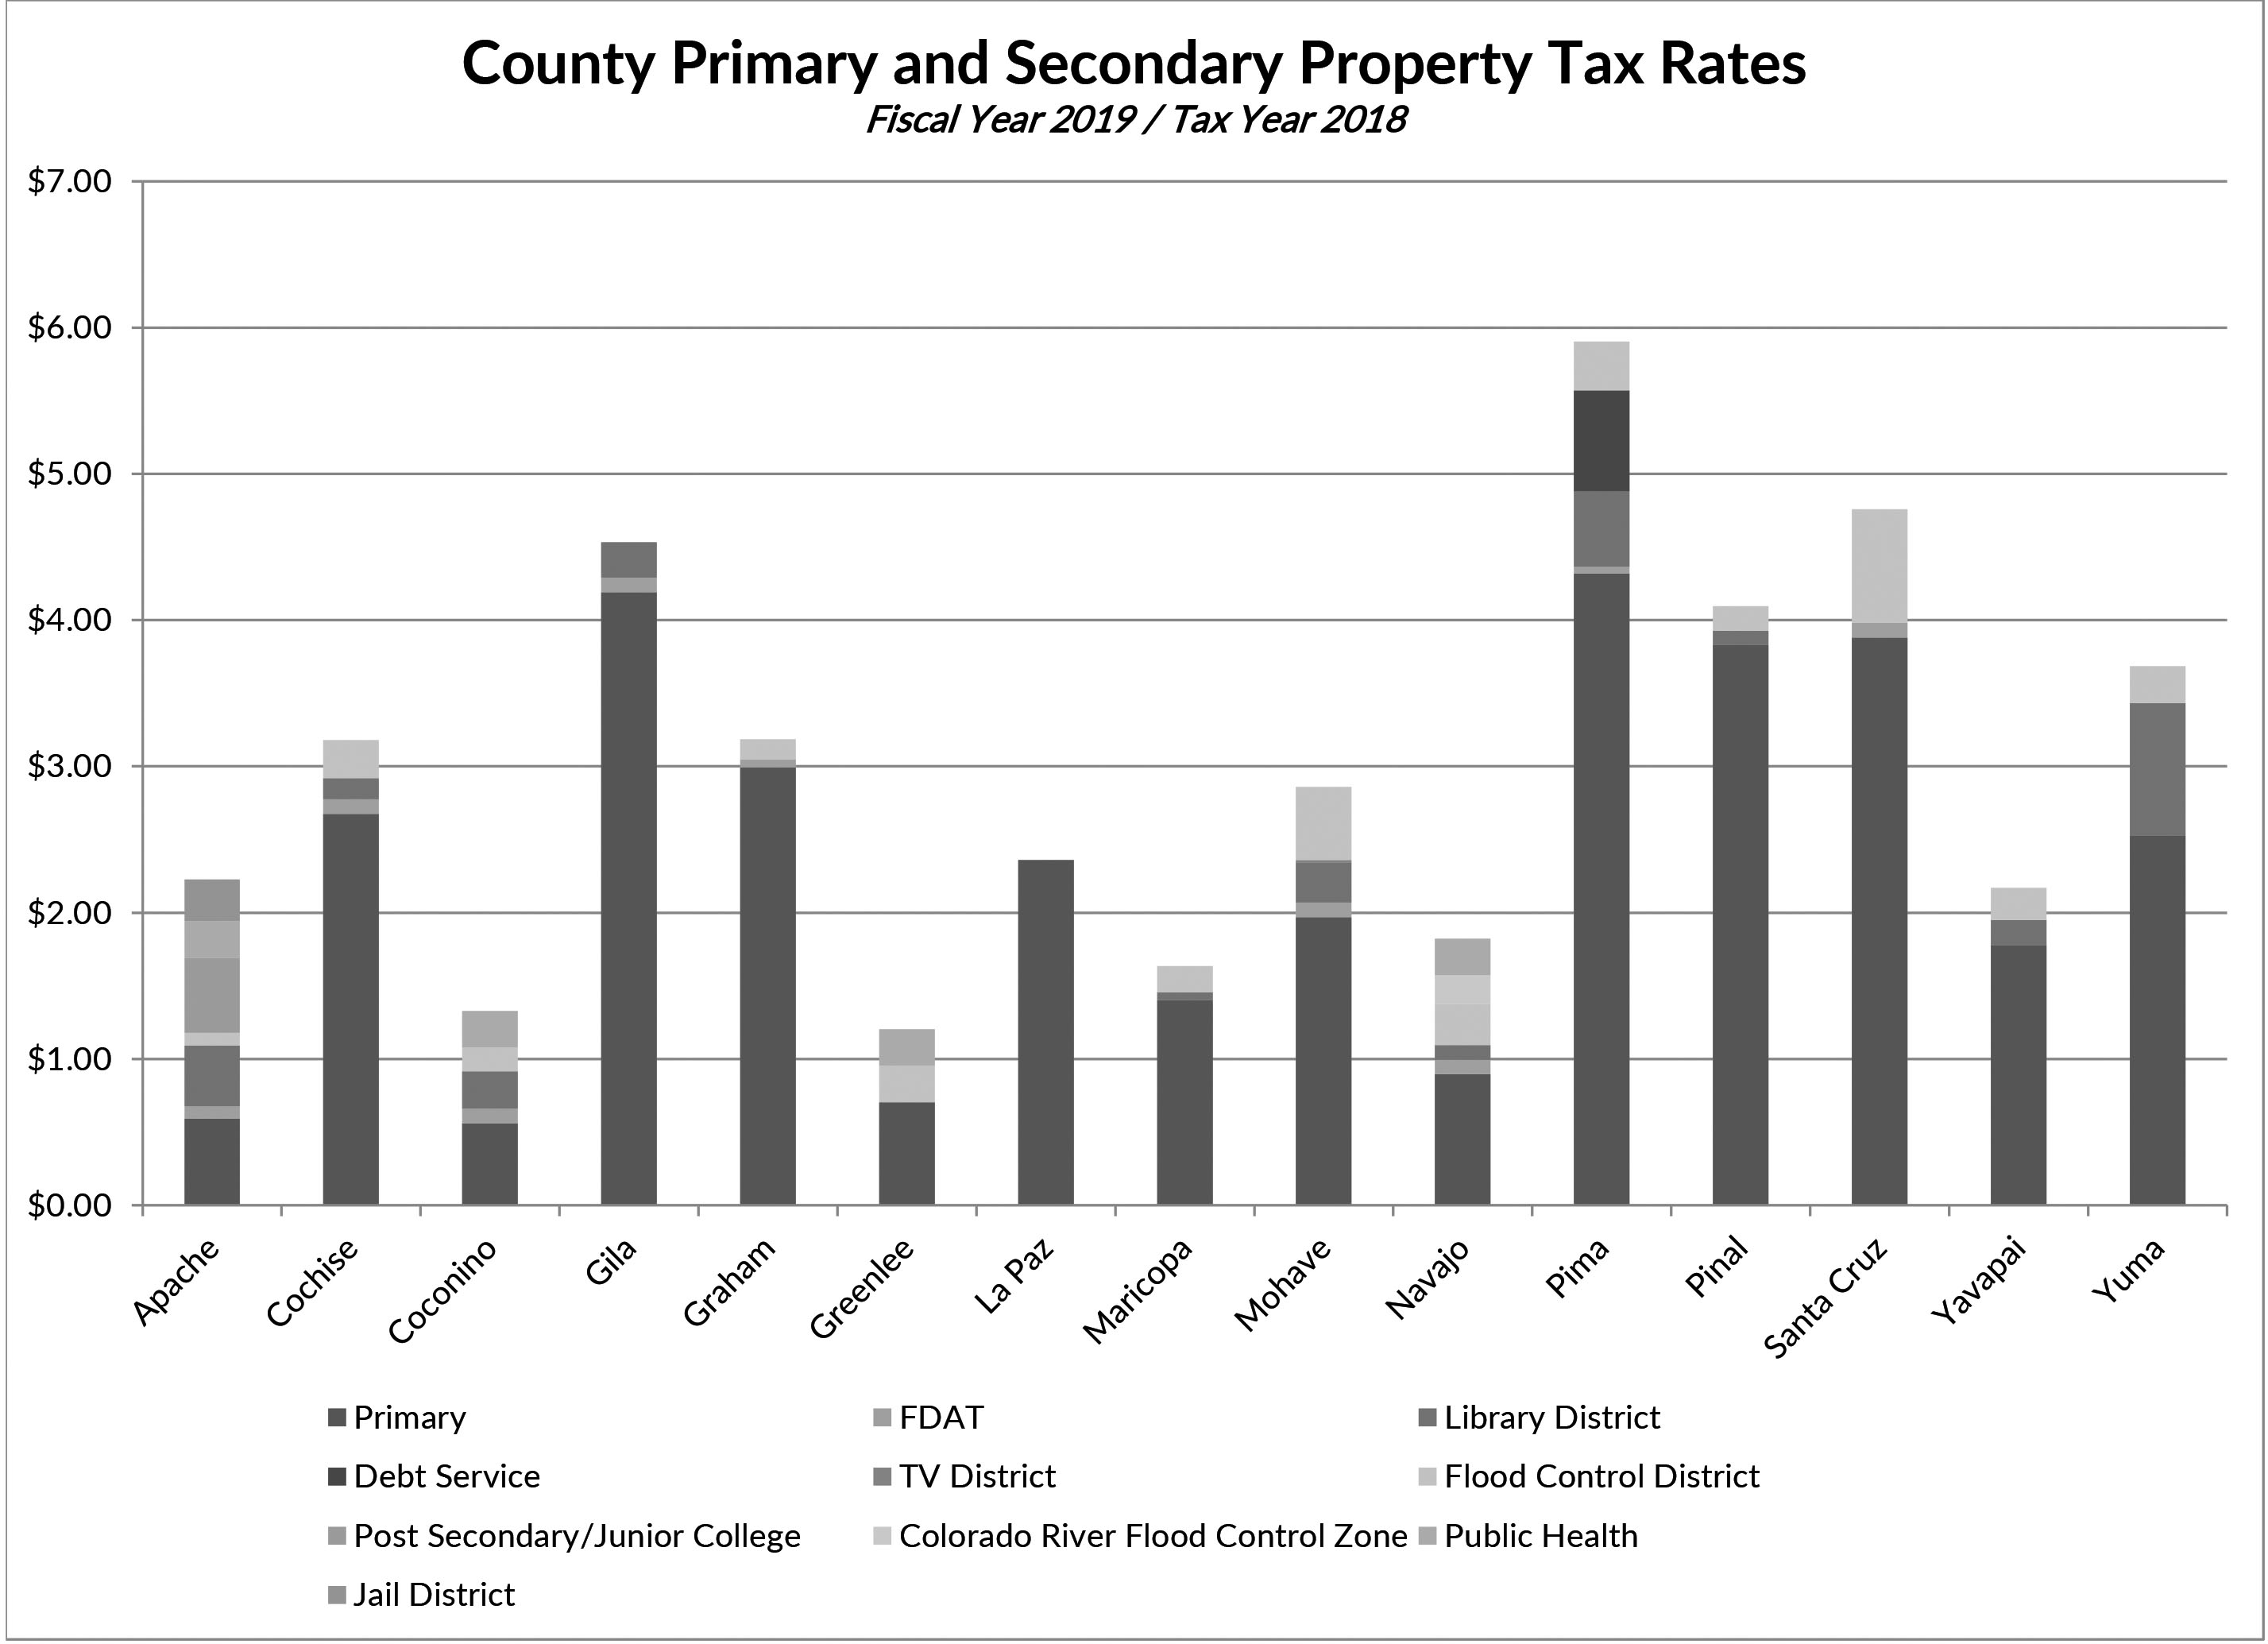 County board to set property tax levy at Aug. 19 meeting